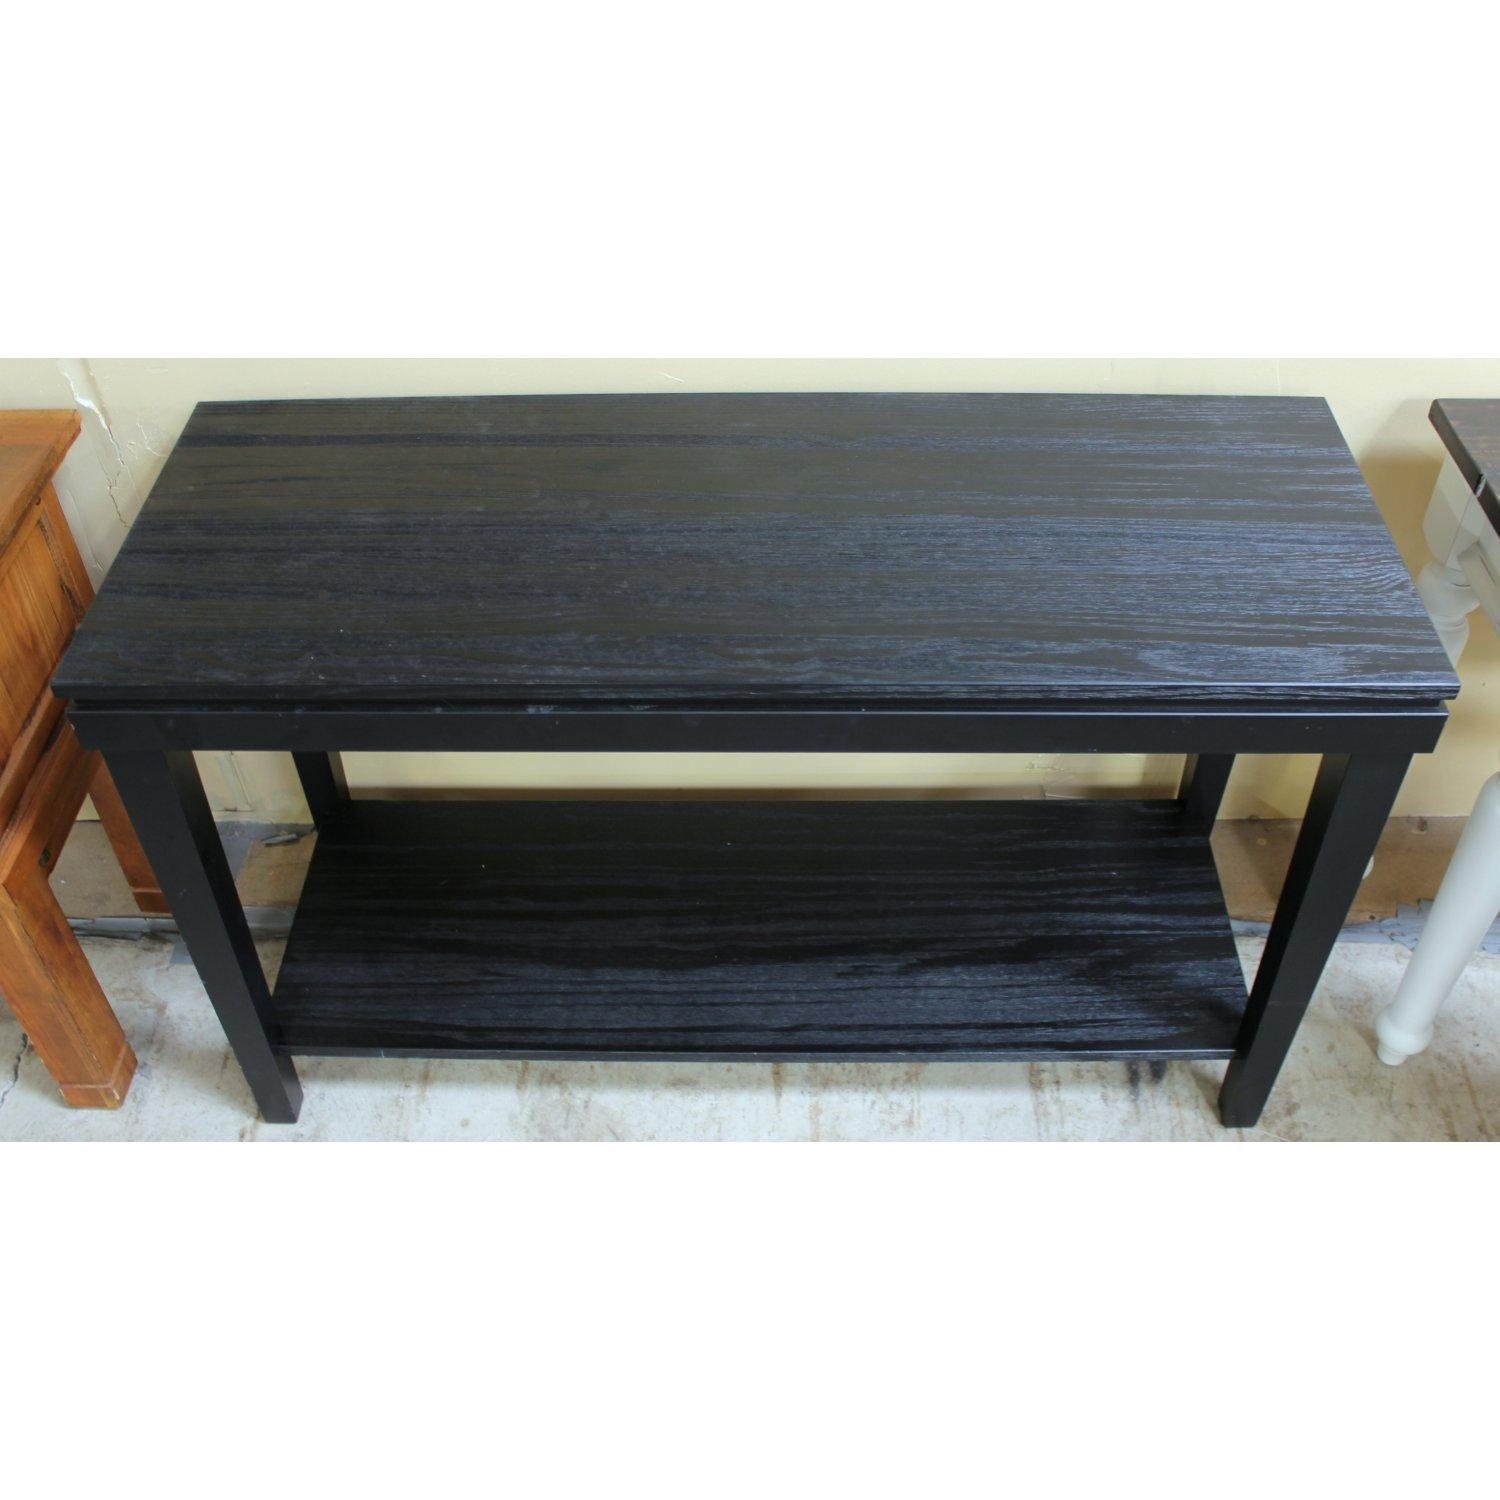 81 Exciting Pier One Sofa Table Home Design Red Side Tables Black Regarding Pier 1 Sofa Beds (Photo 14 of 20)